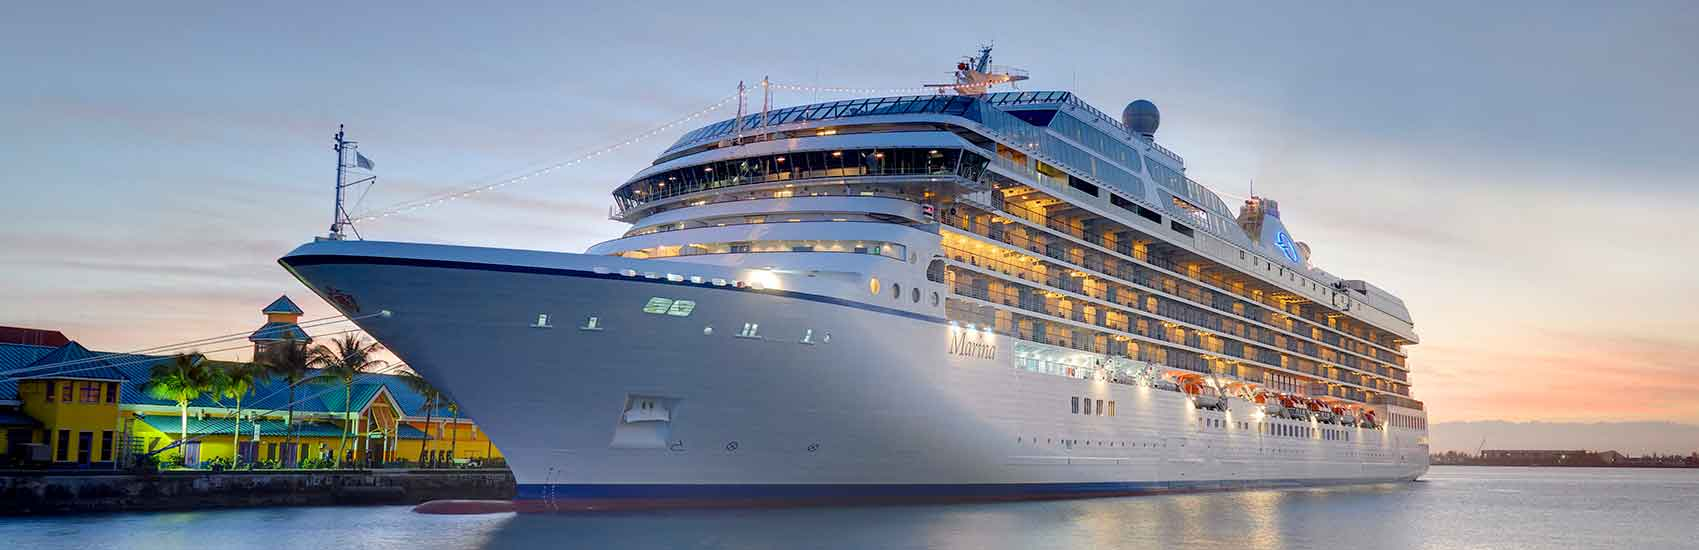 Direct Deal with Oceania Cruises 0